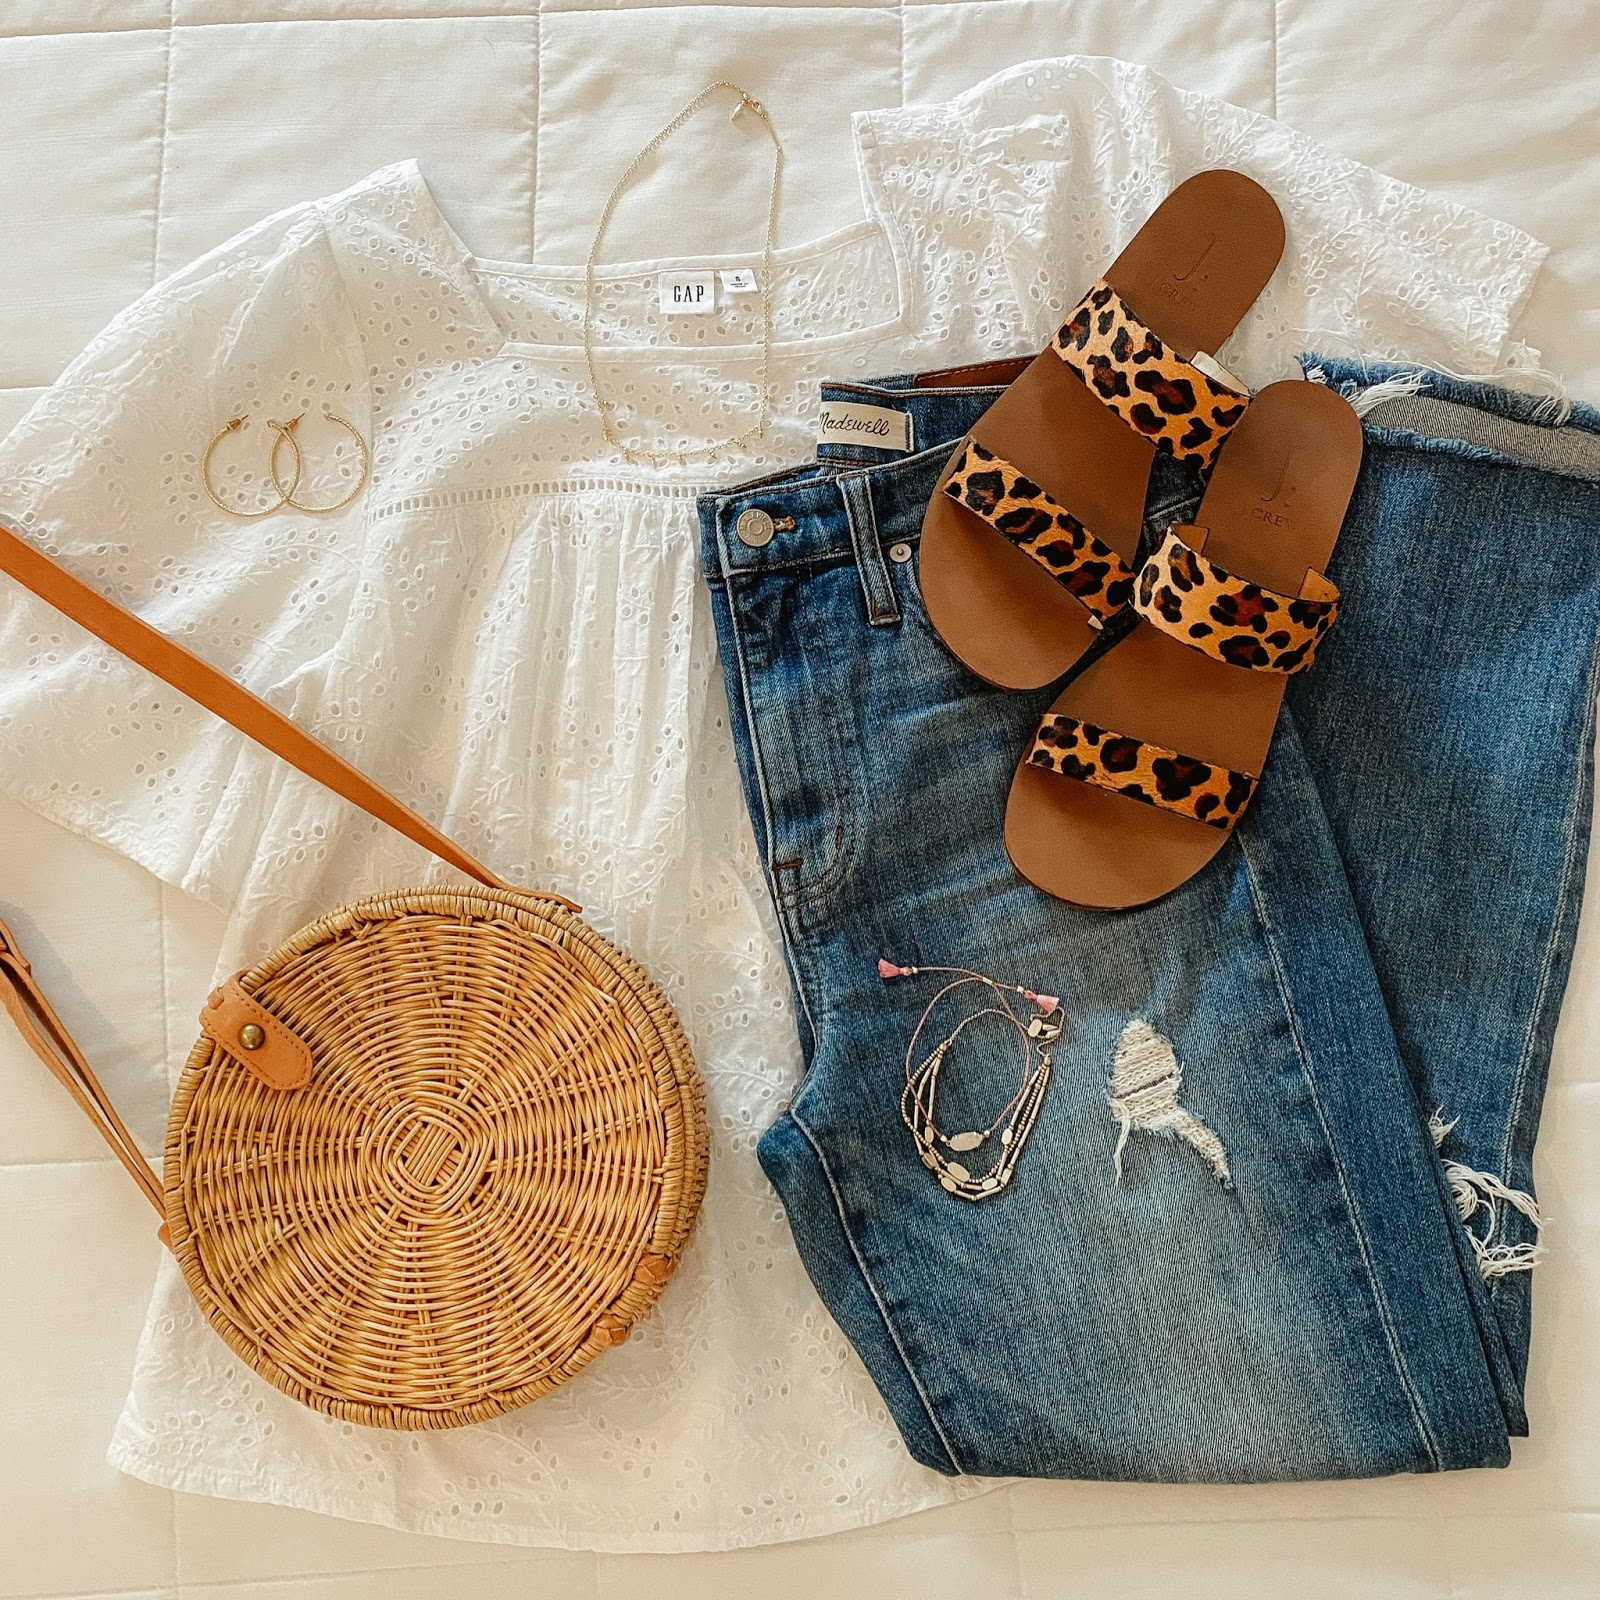 style on a budget, instagram roundup, spring outfits, spring fashion, nc blogger, north carolina blogger